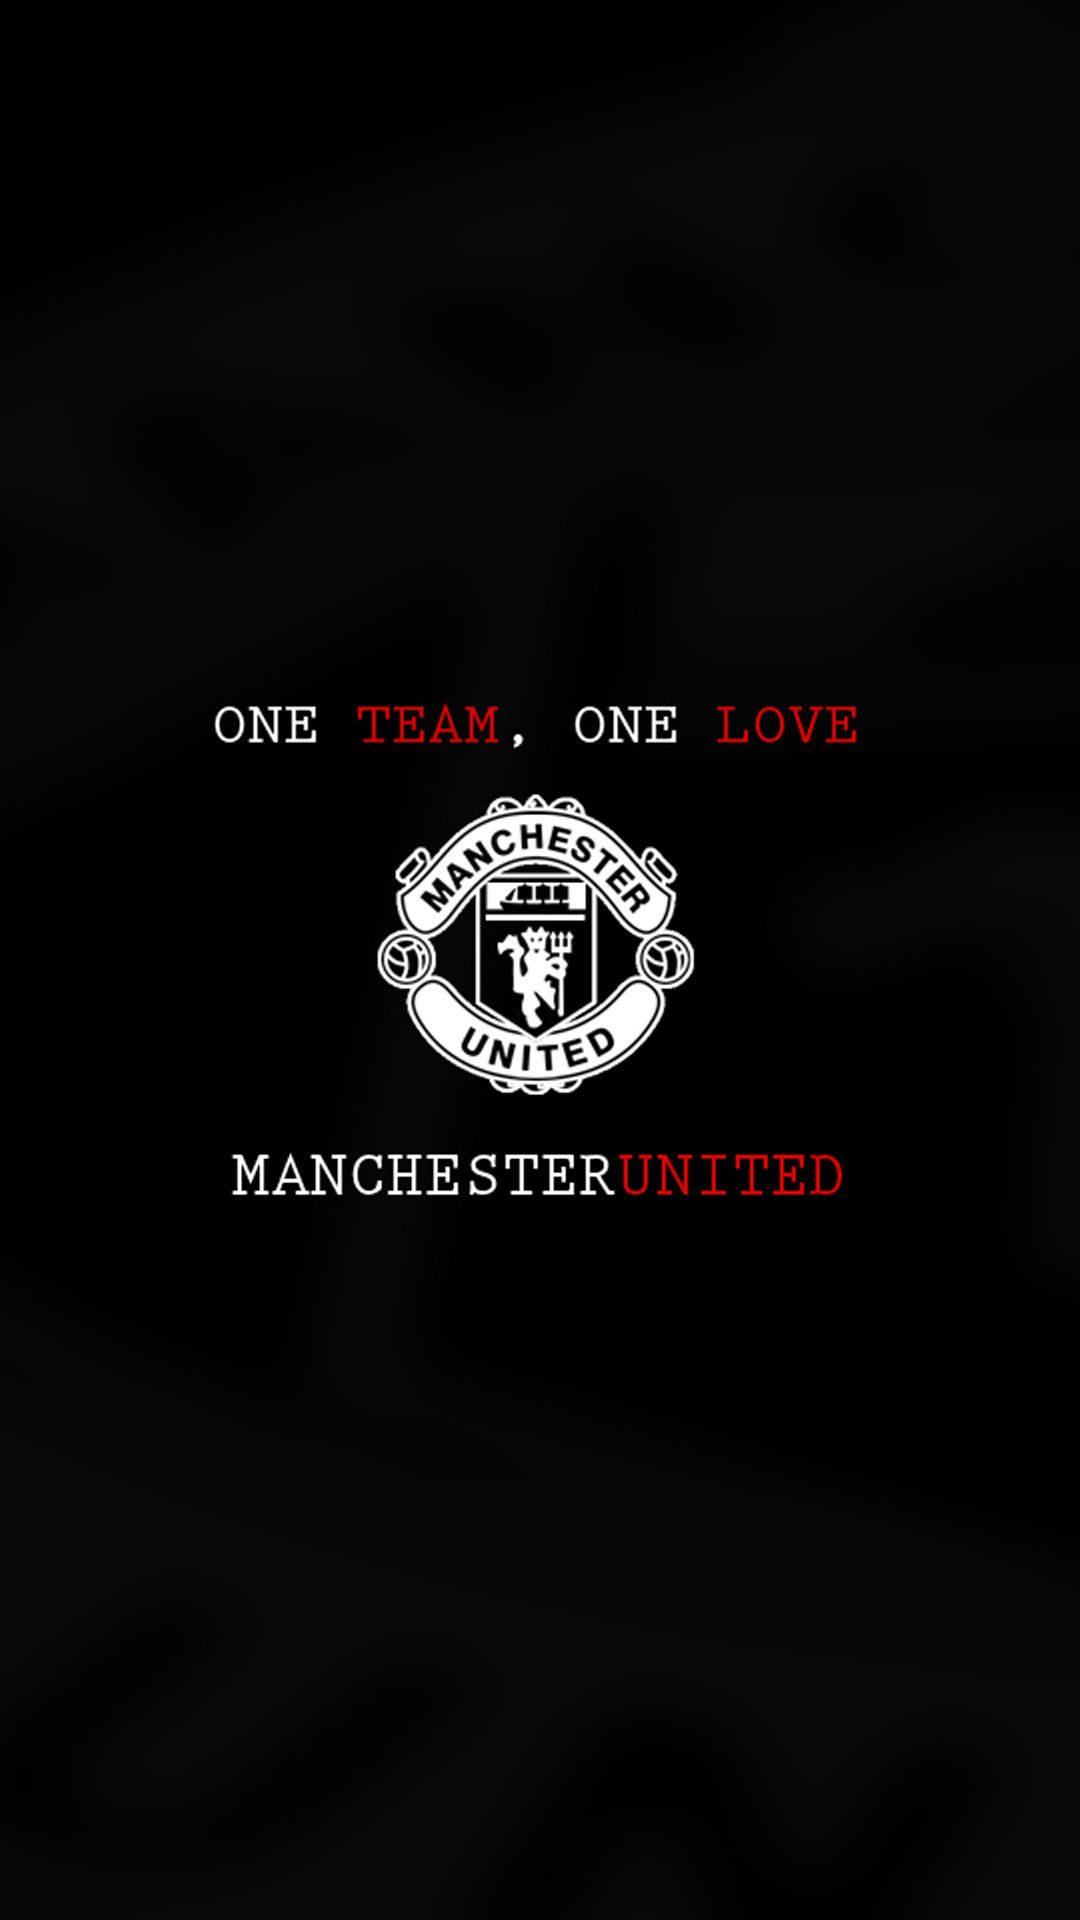 Apple Iphone 6 Plus Wallpaper In Hd With Manchester United Logo In